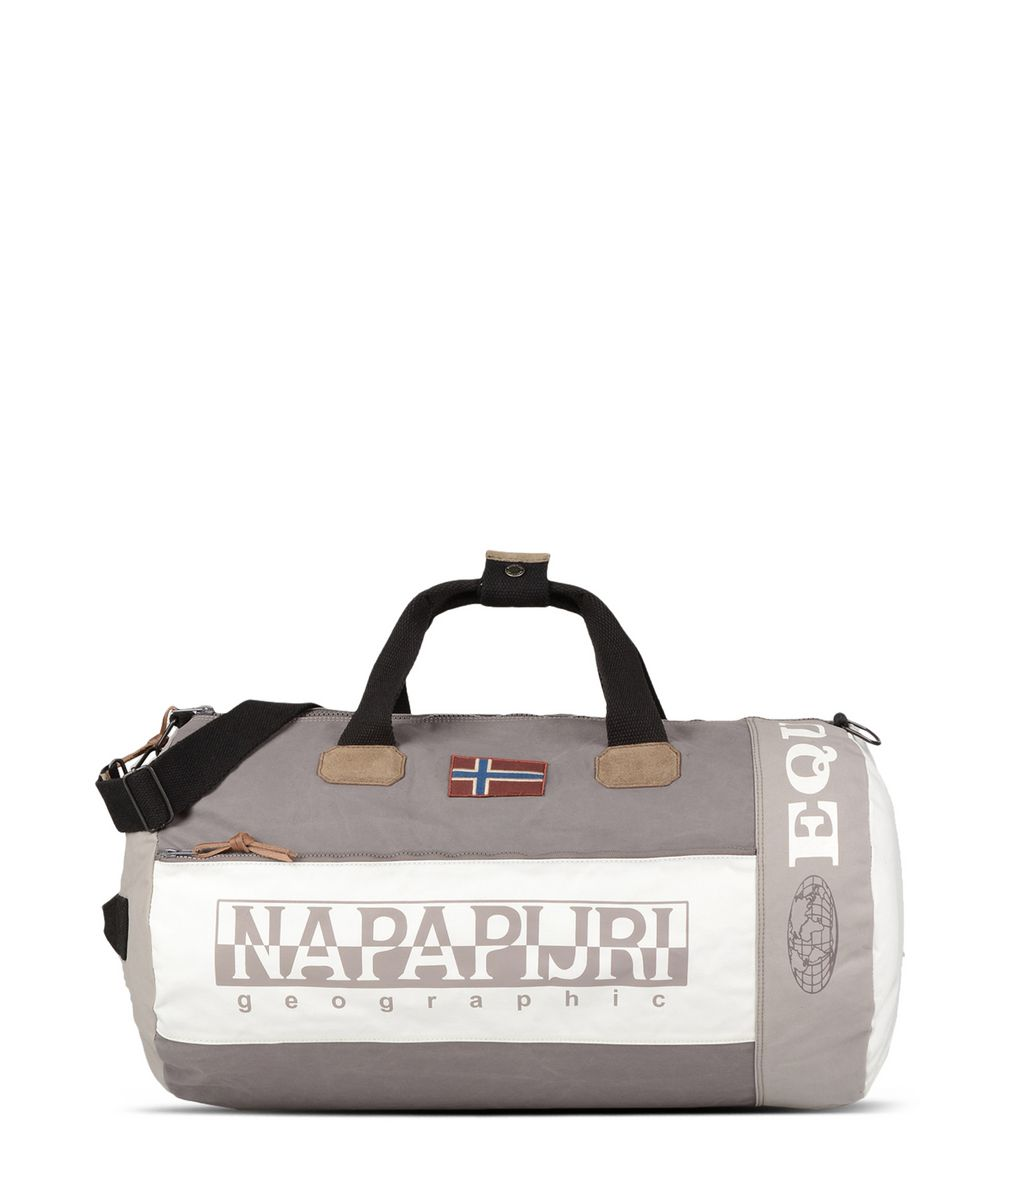 NAPAPIJRI SAROV  TRAVEL BAG,LIGHT GREY